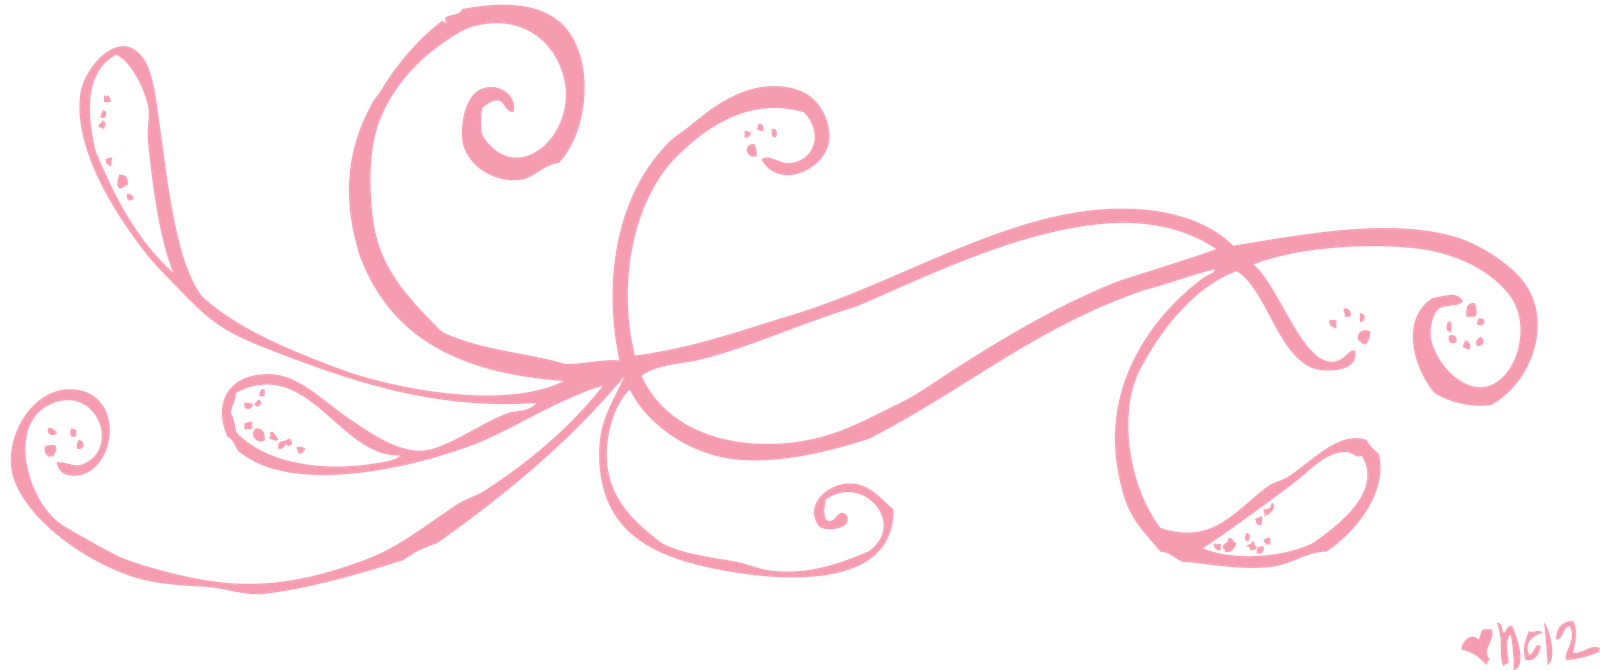 Free clipart february. Pretty lines cliparts download